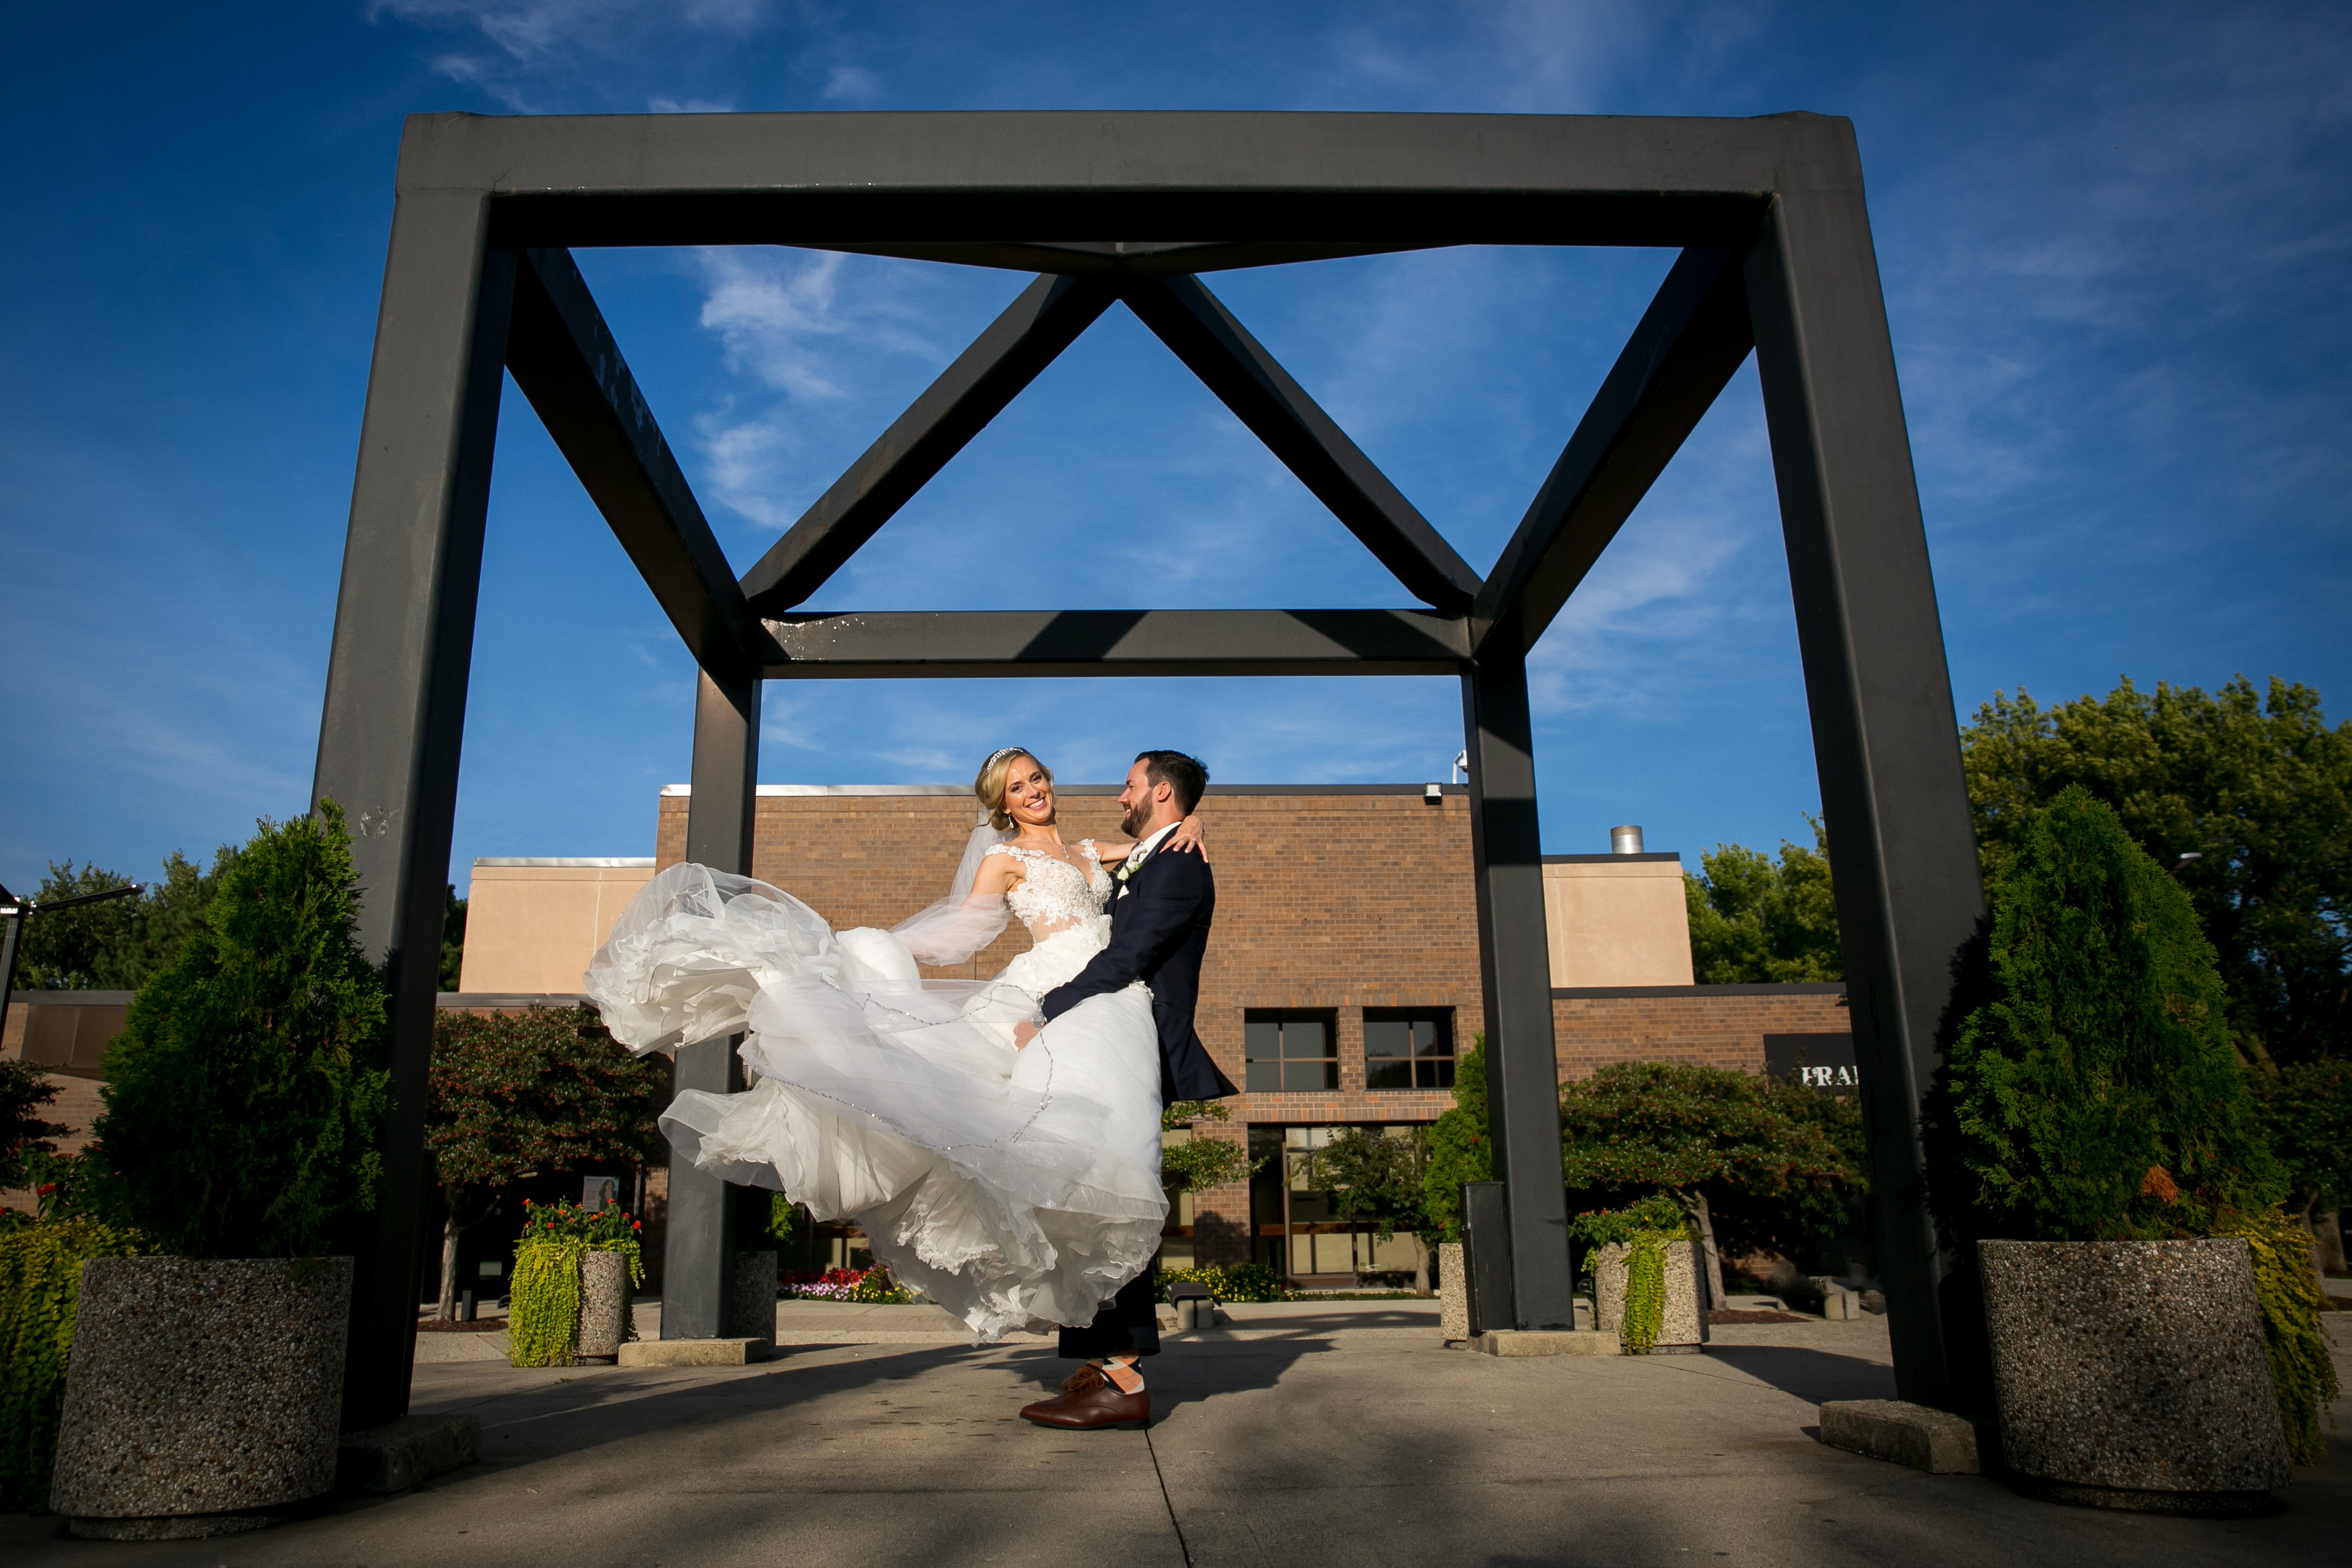 Groom Lifts and Twirls Bride